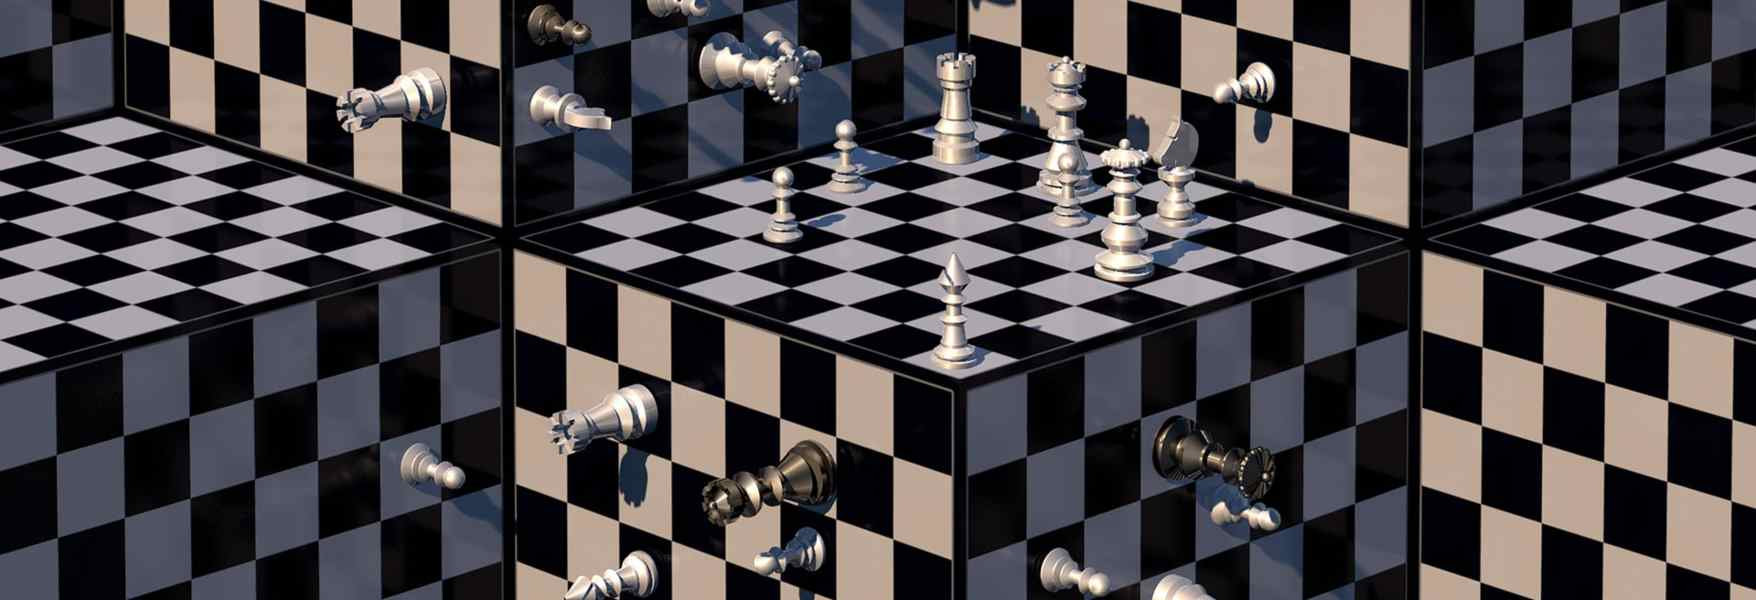 The rise of Machine Intelligence: Computer Chess - OpenMind